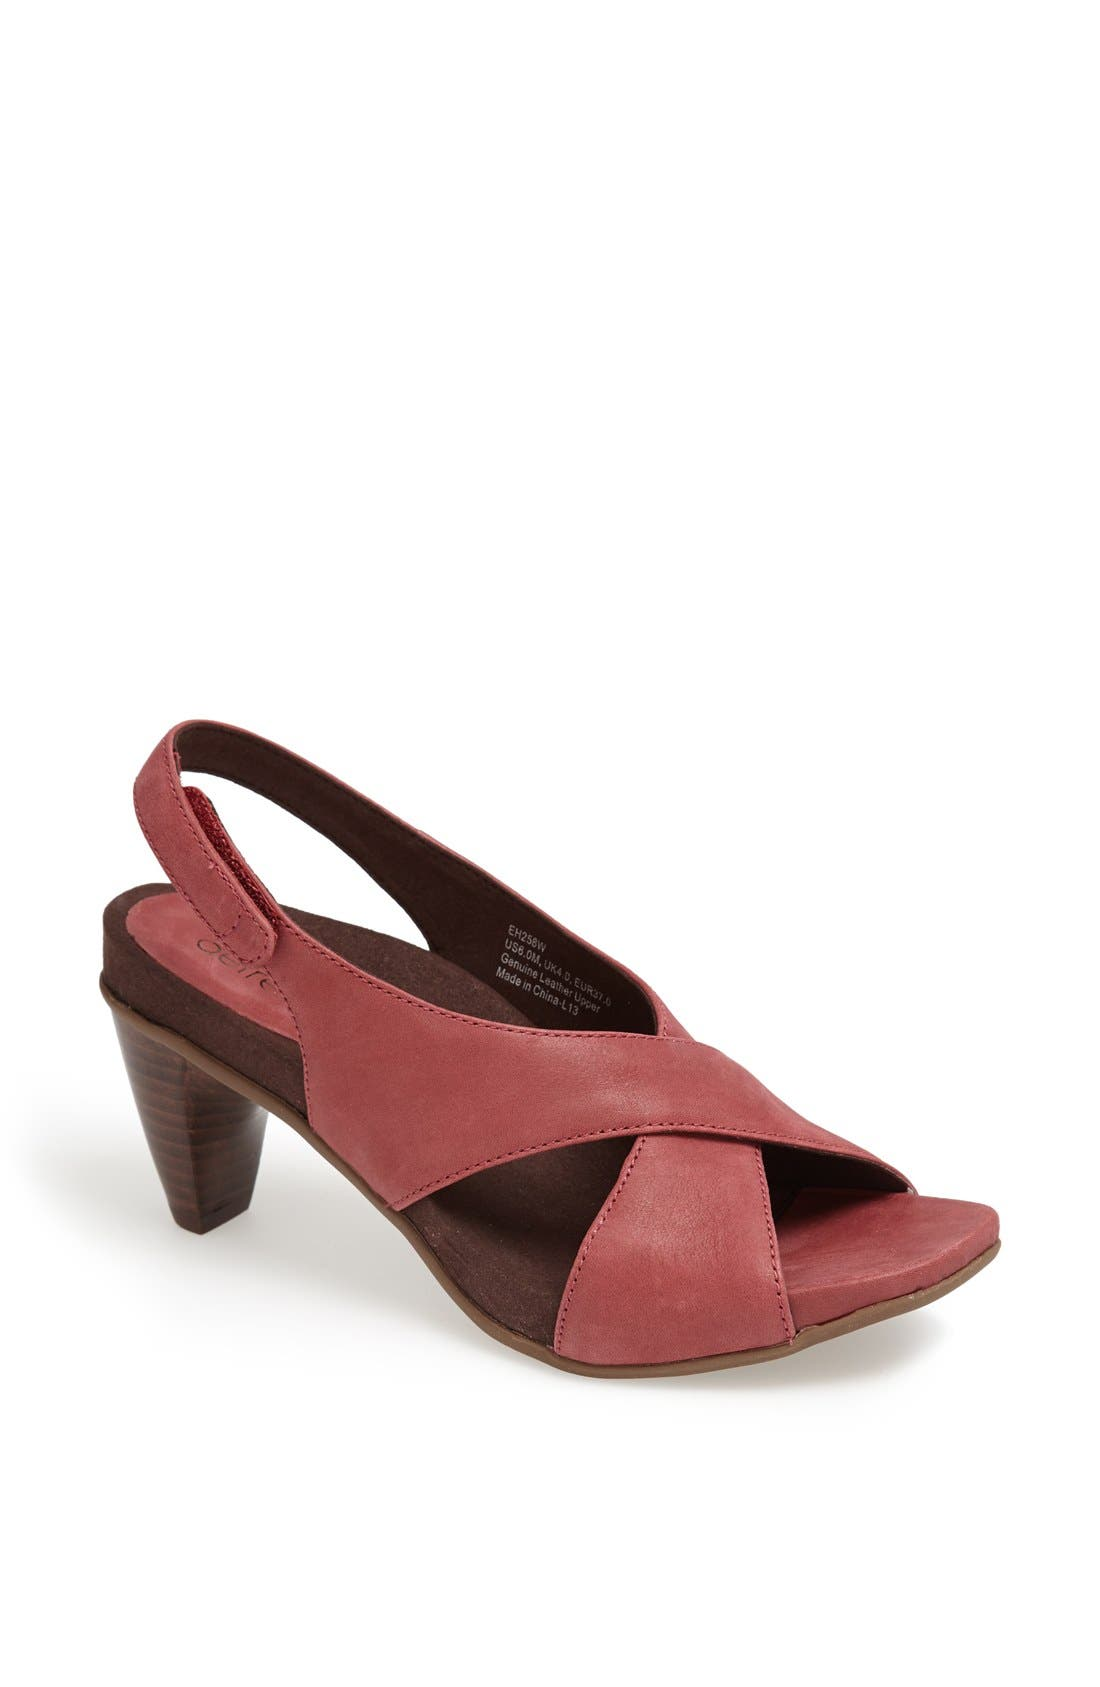 Alternate Image 1 Selected - Aetrex 'Courtney' Slingback Sandal